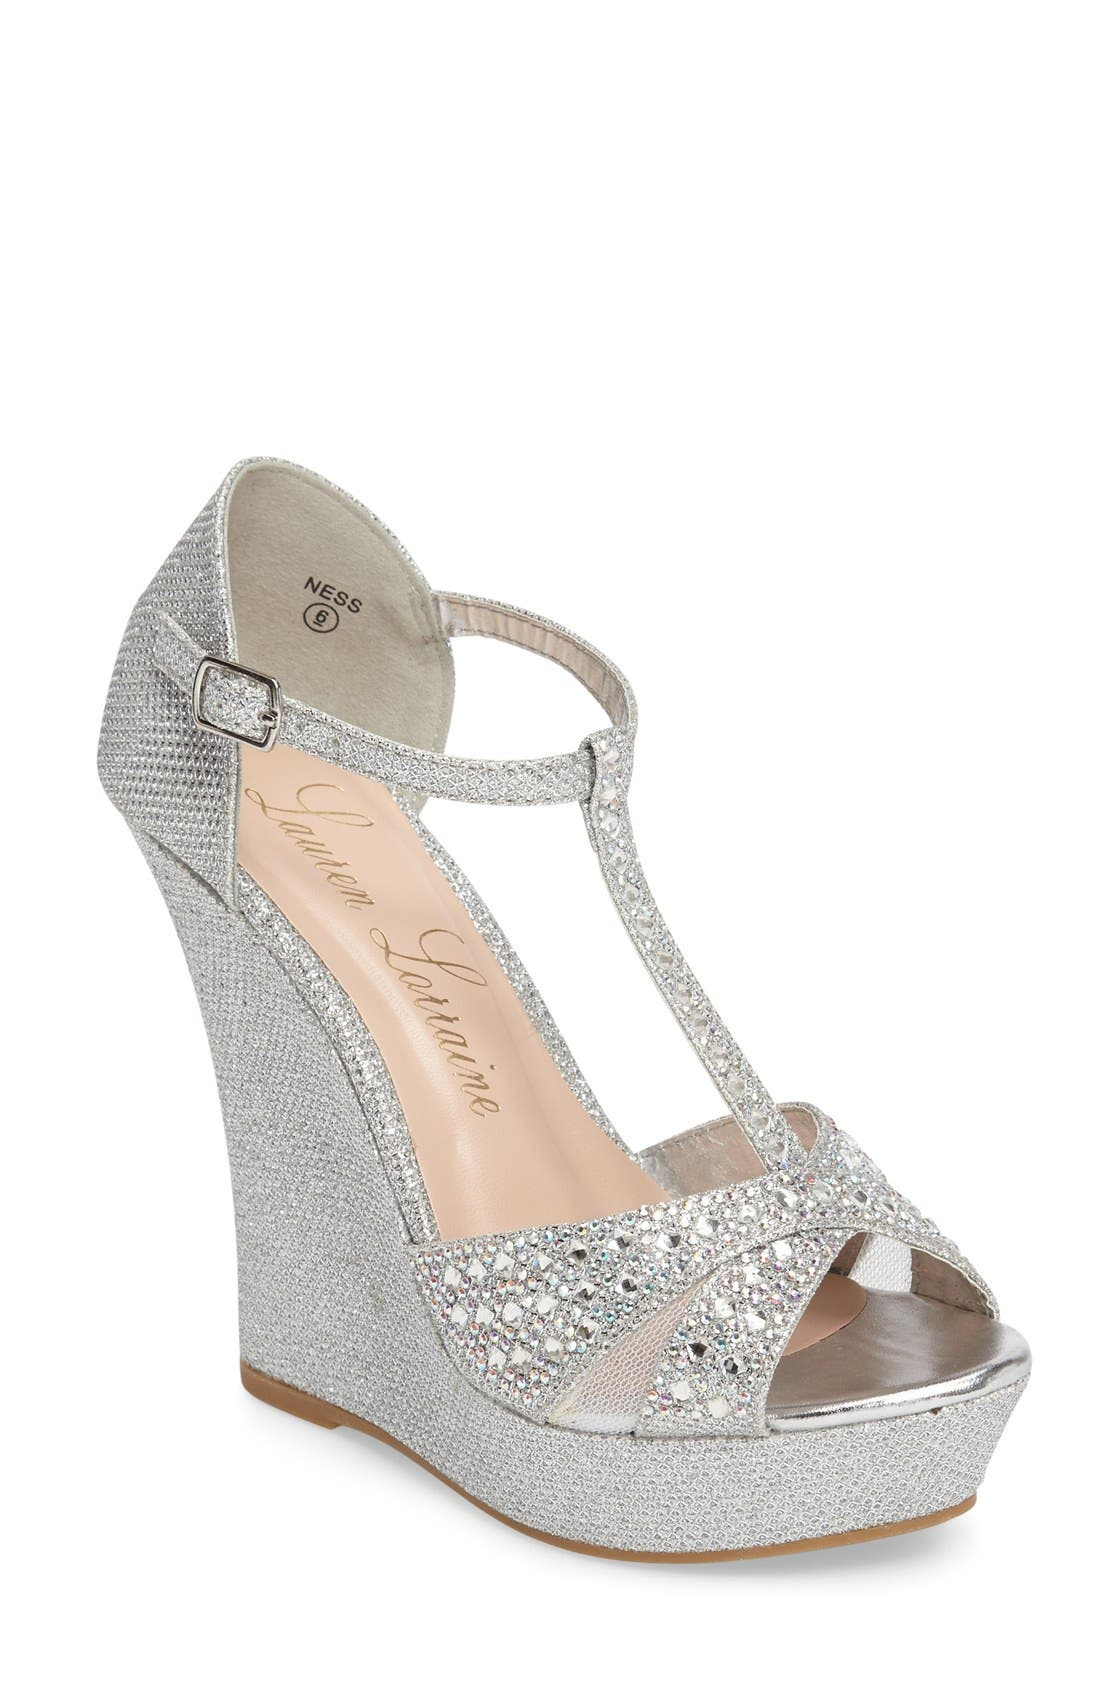 Ness Crystal Embellished Wedge Sandal,                             Main thumbnail 1, color,                             Silver